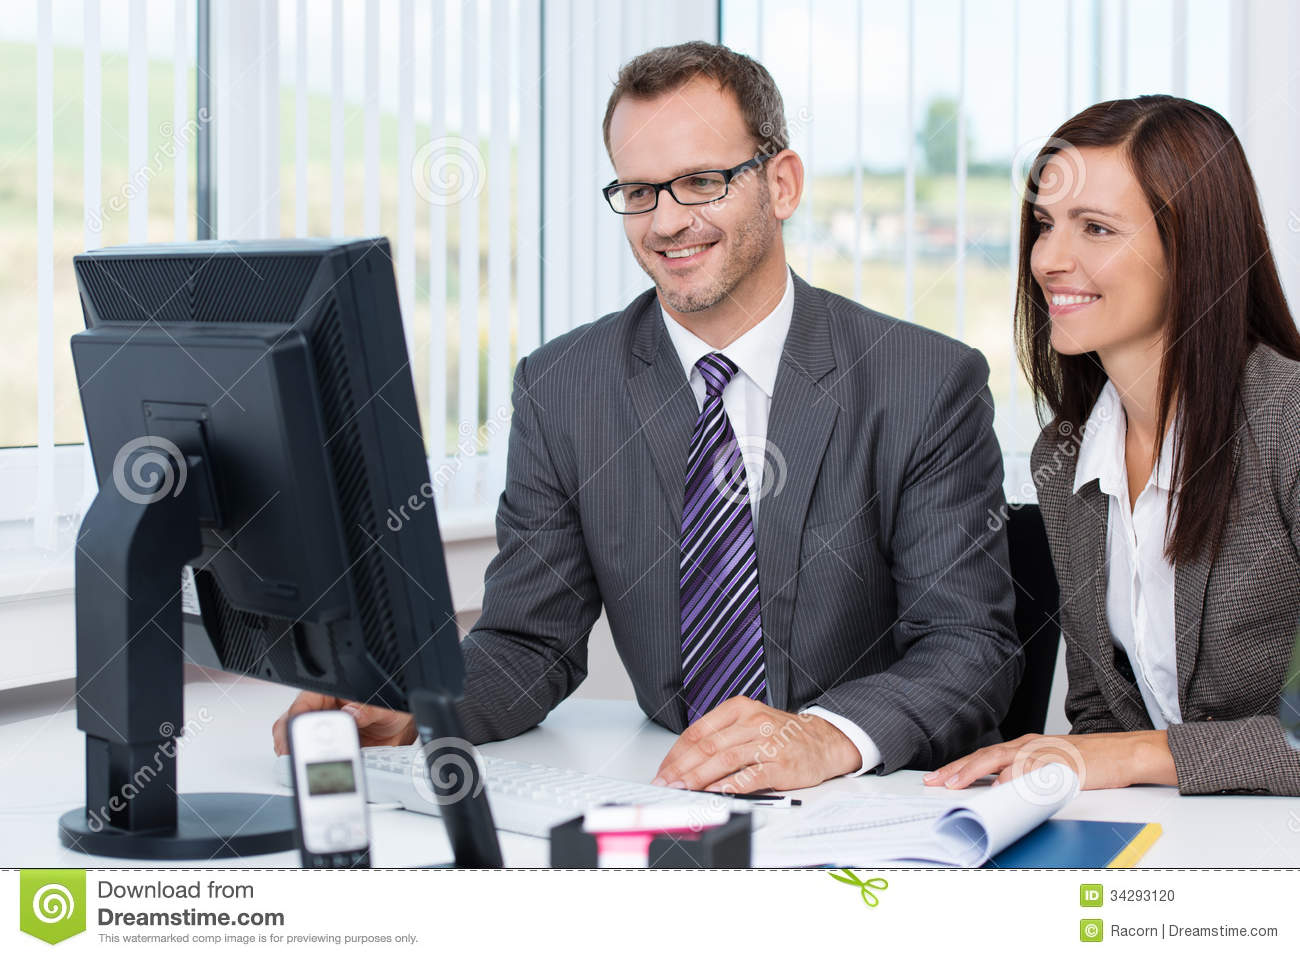 Furniture Computer Desk for Two People : Successful Business Partnership Stock Photo - Image: 34293120